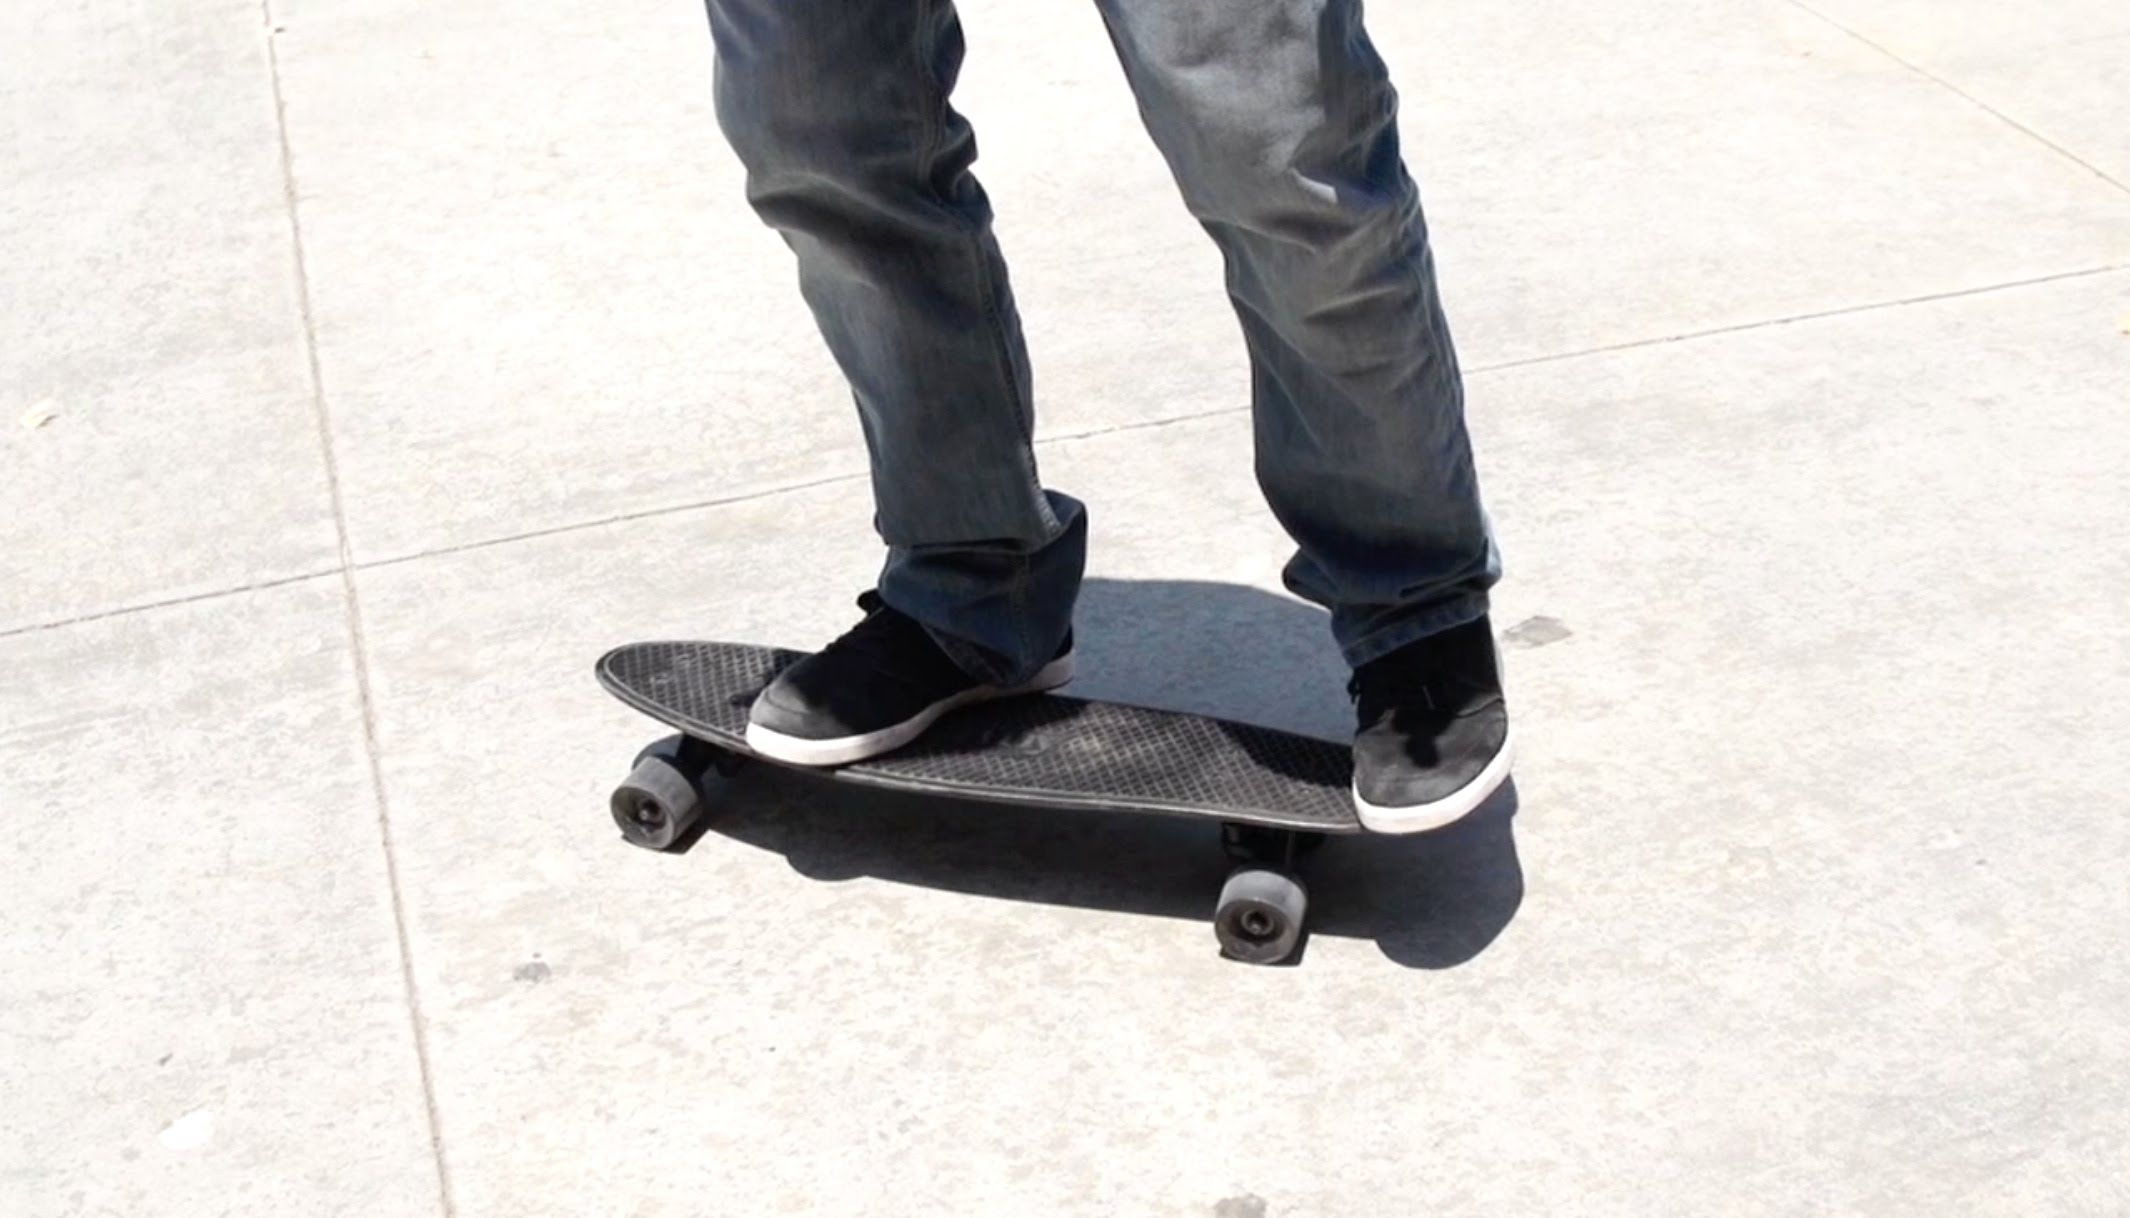 HOW TO RIDE A PENNY SKATEBOARD FOR BEGINNERS Penny